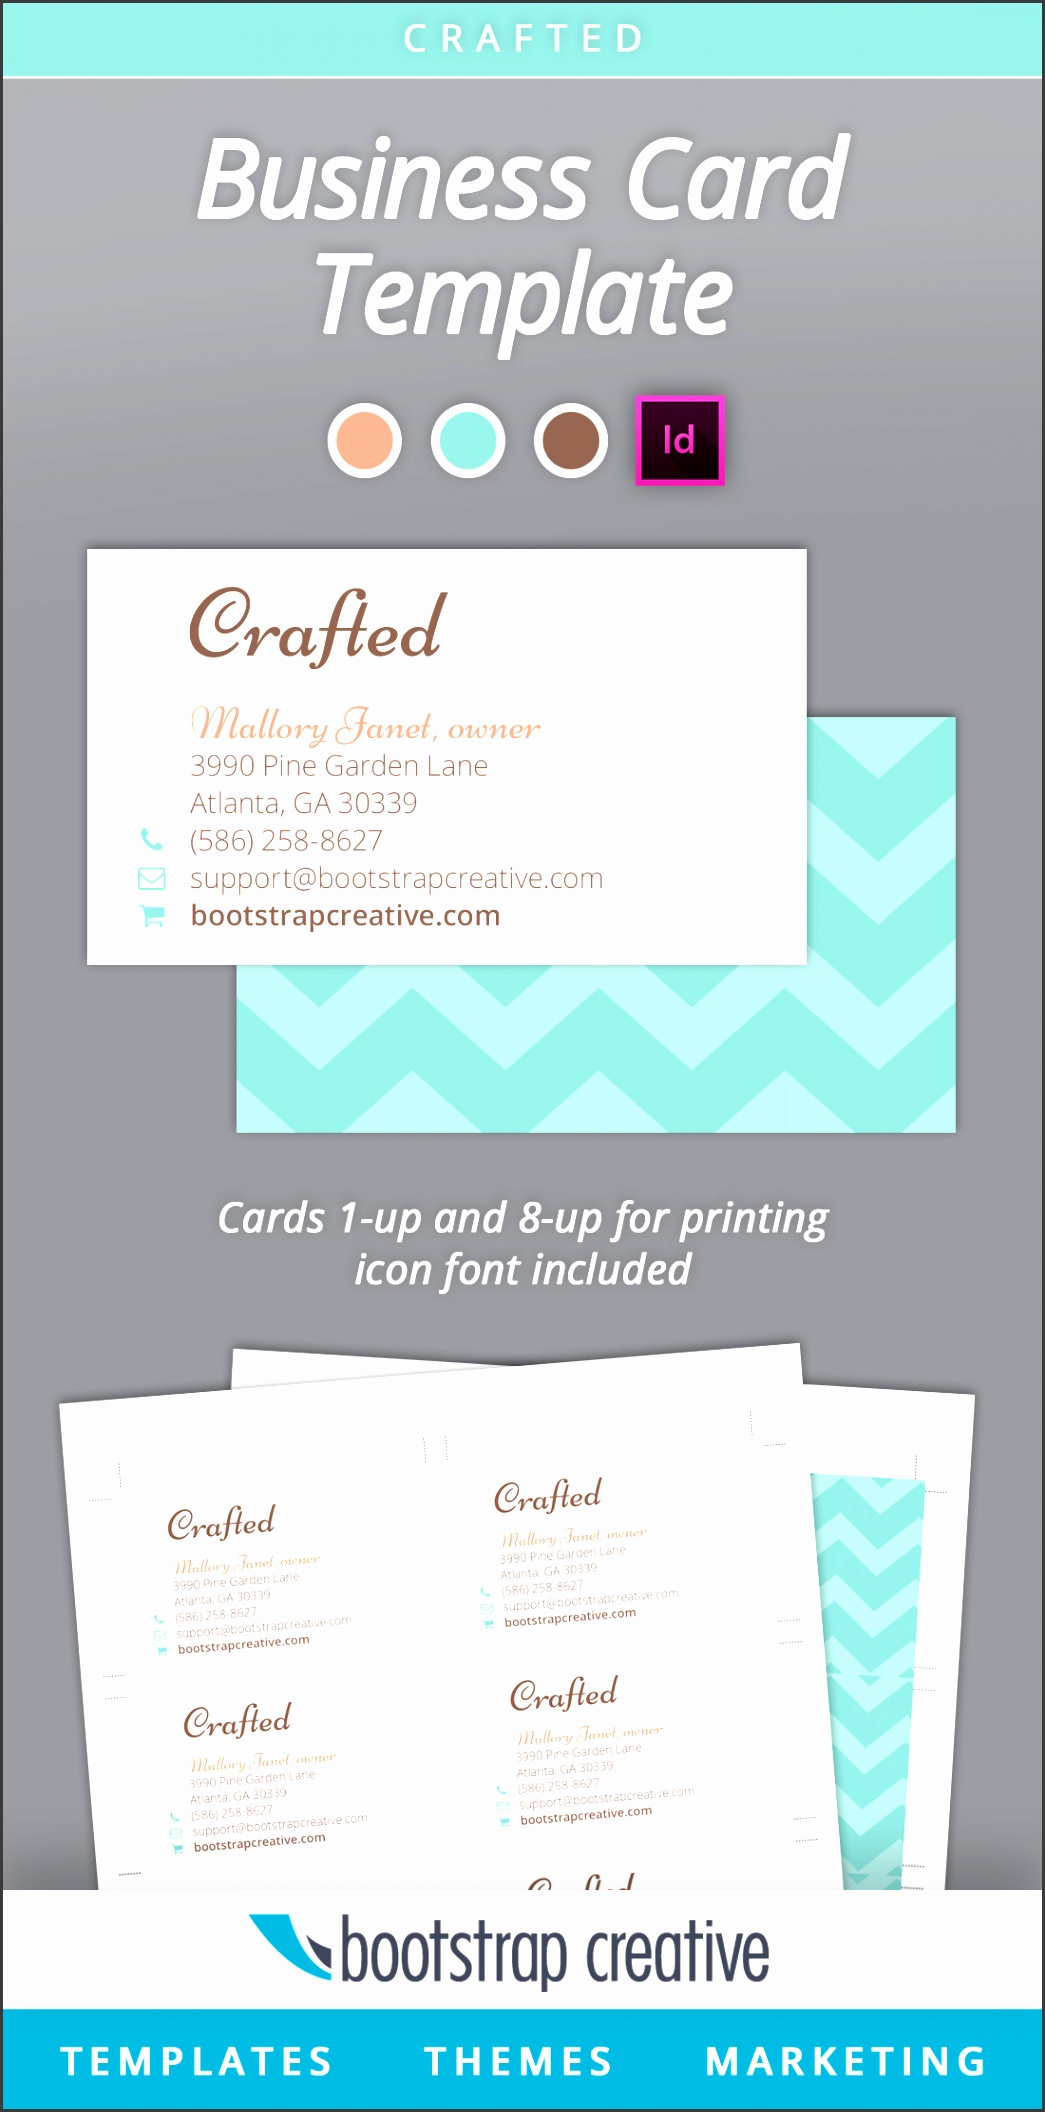 adobe indesign business card template 28 images business card